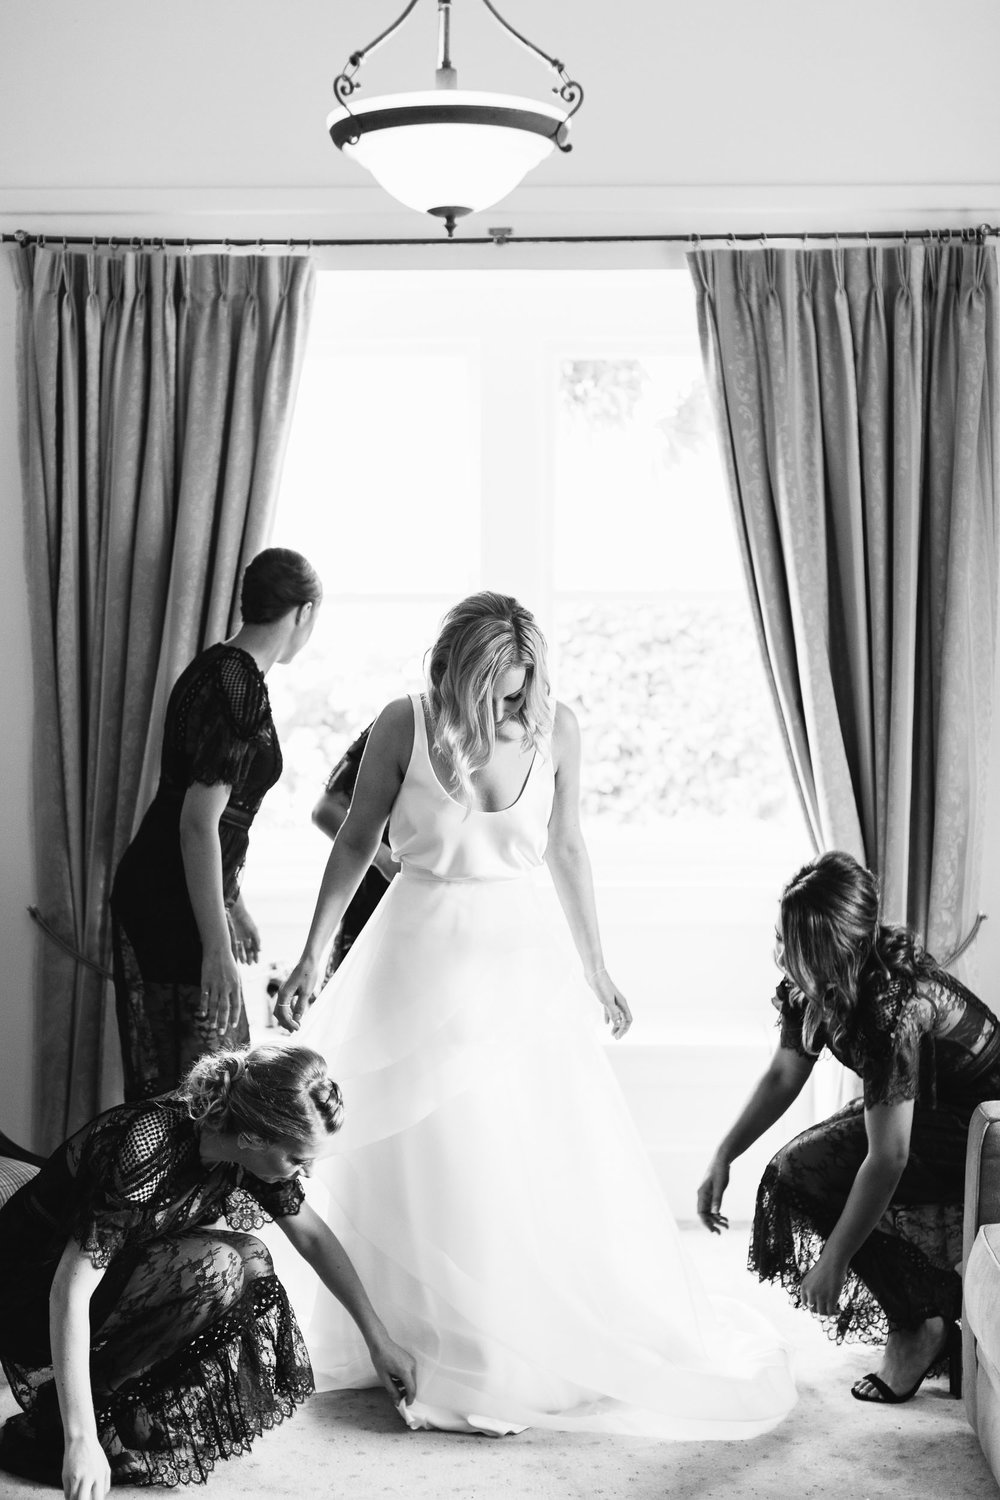 Kas-Richards-Wedding-Photographer-Country-Winery-Wedding-One-Day-Bridal-Gown-22.jpg